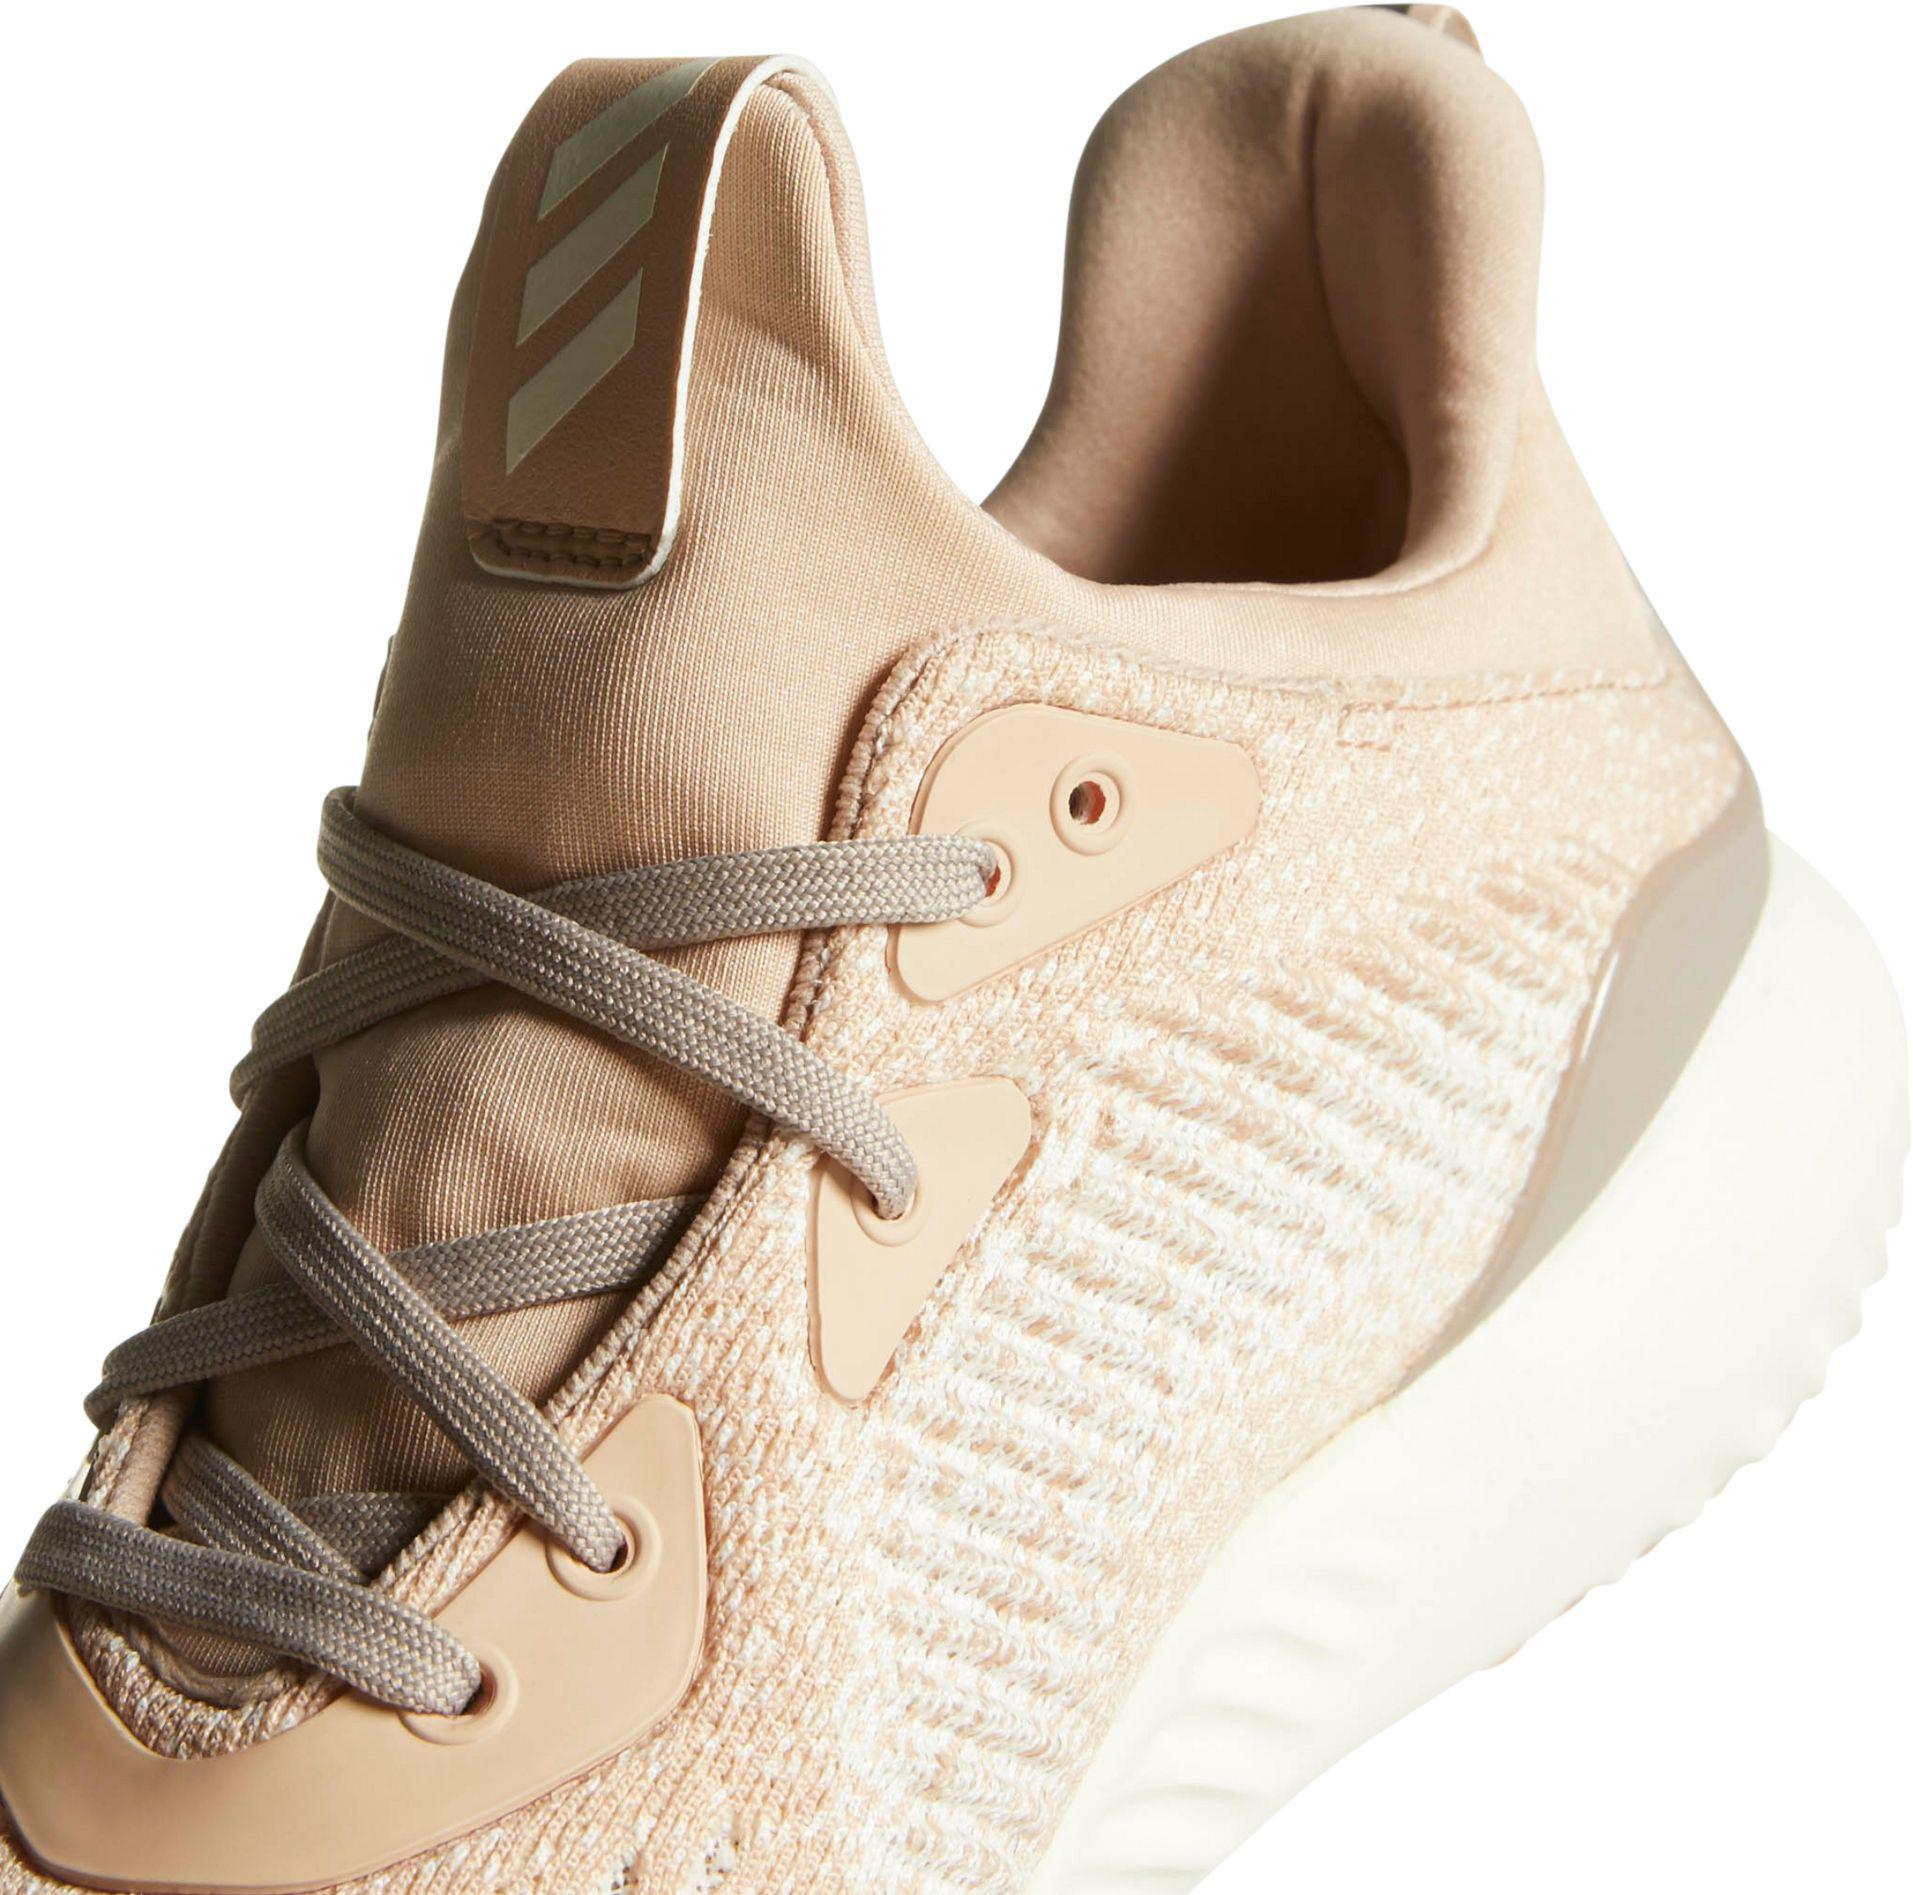 a6b33e3ee4bc1 Adidas - Multicolor Alphabounce Running Shoes - Lyst